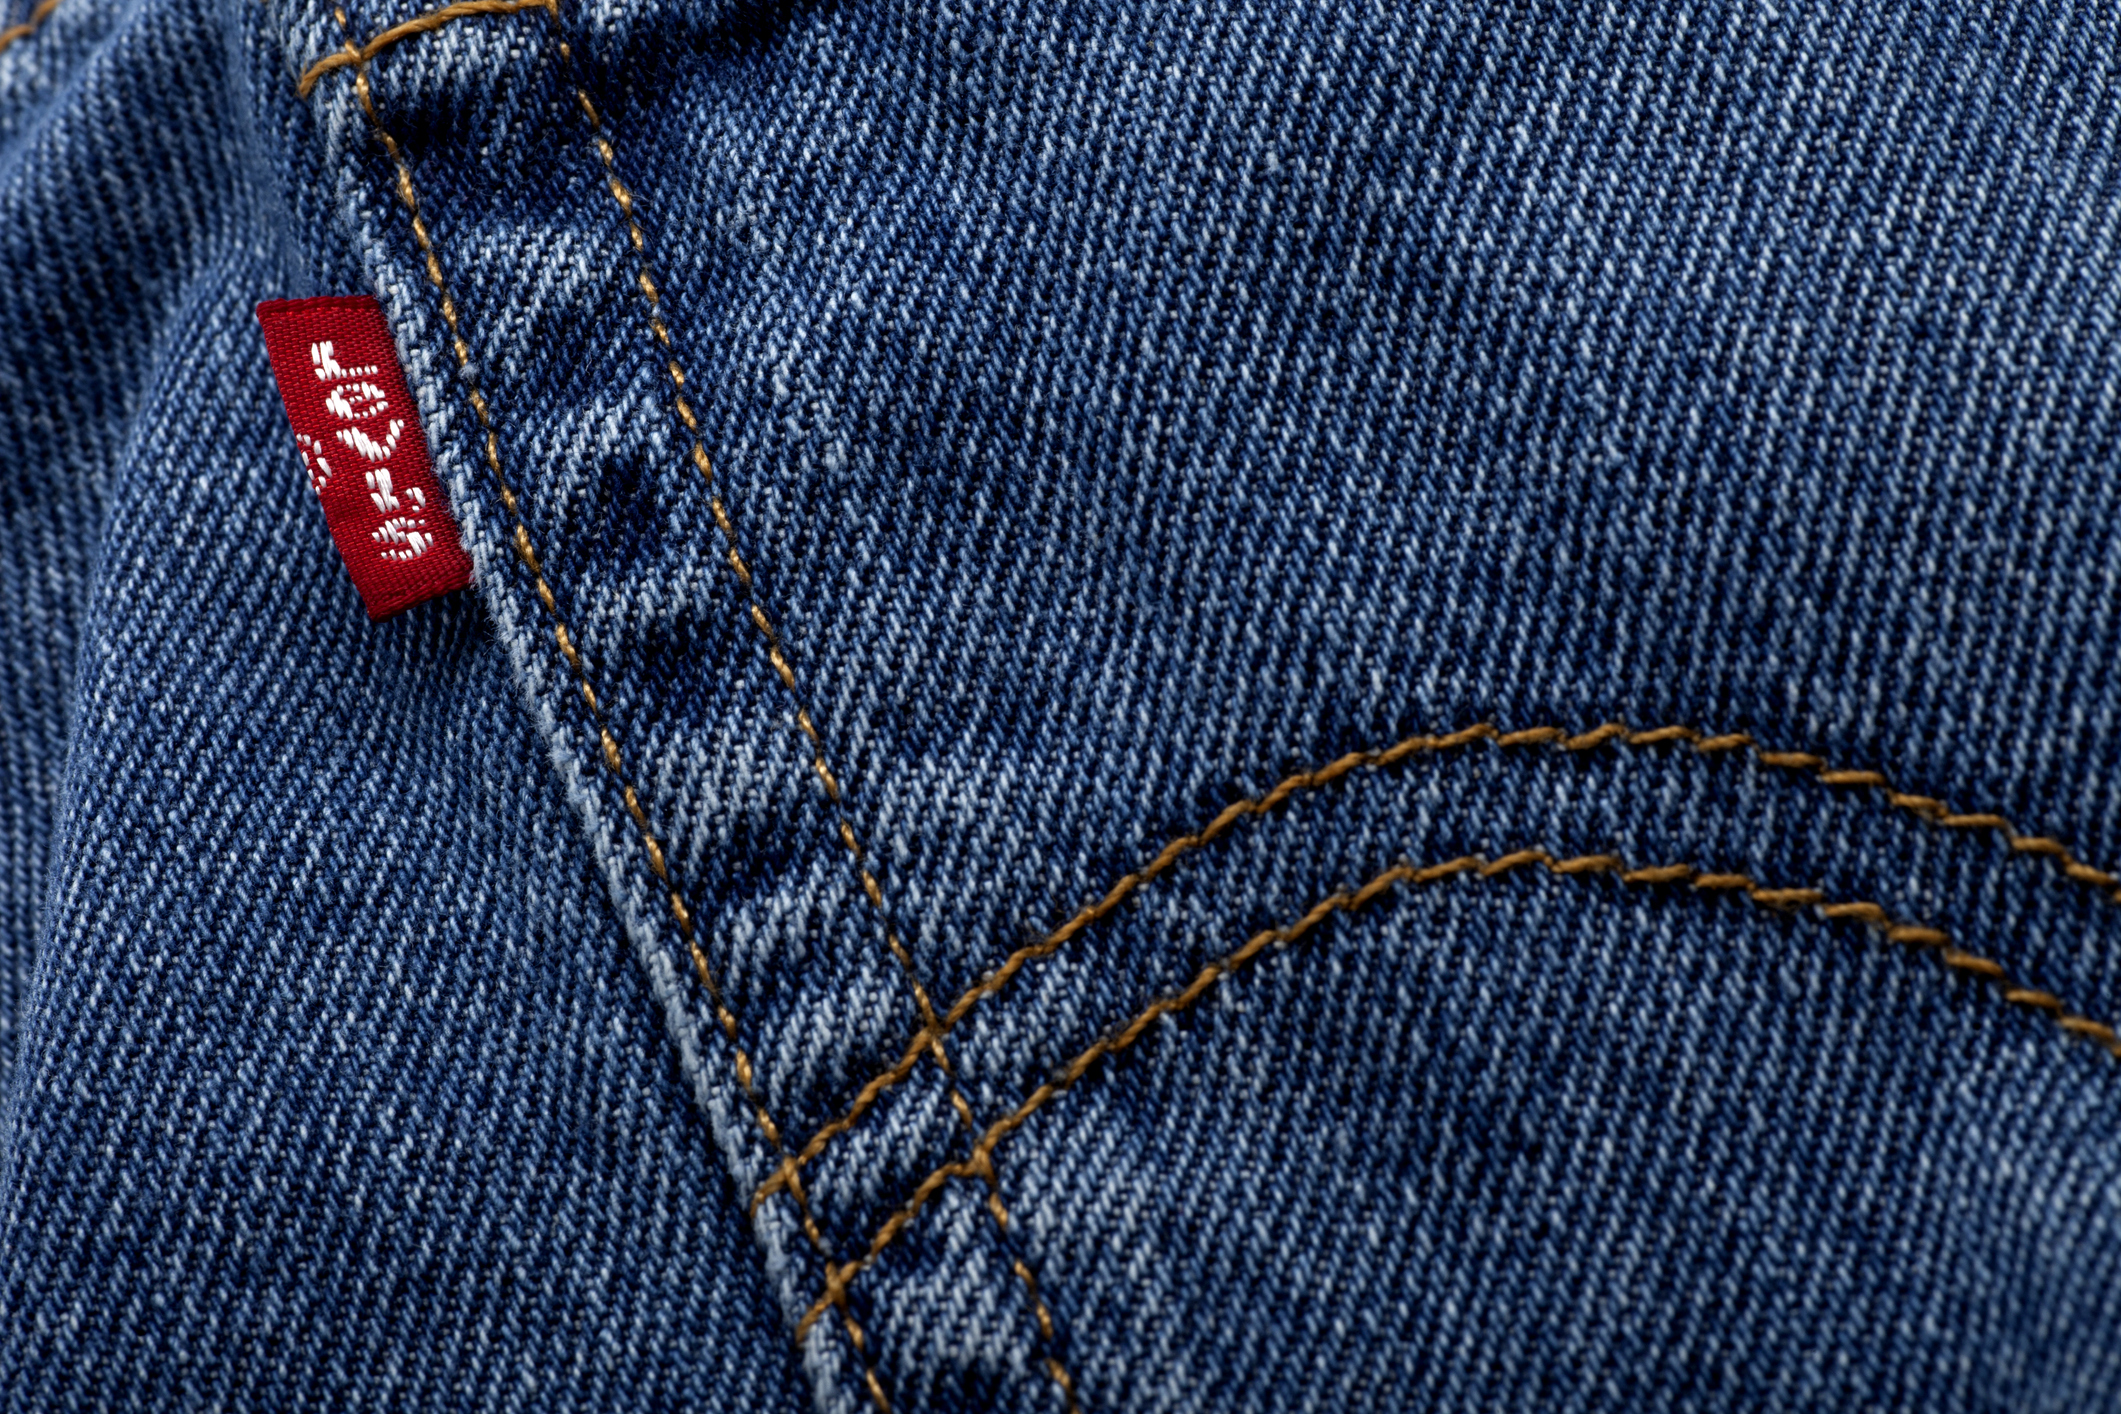 Levi's sets aggressive targets to cut emissions across global supply chain | Procurement